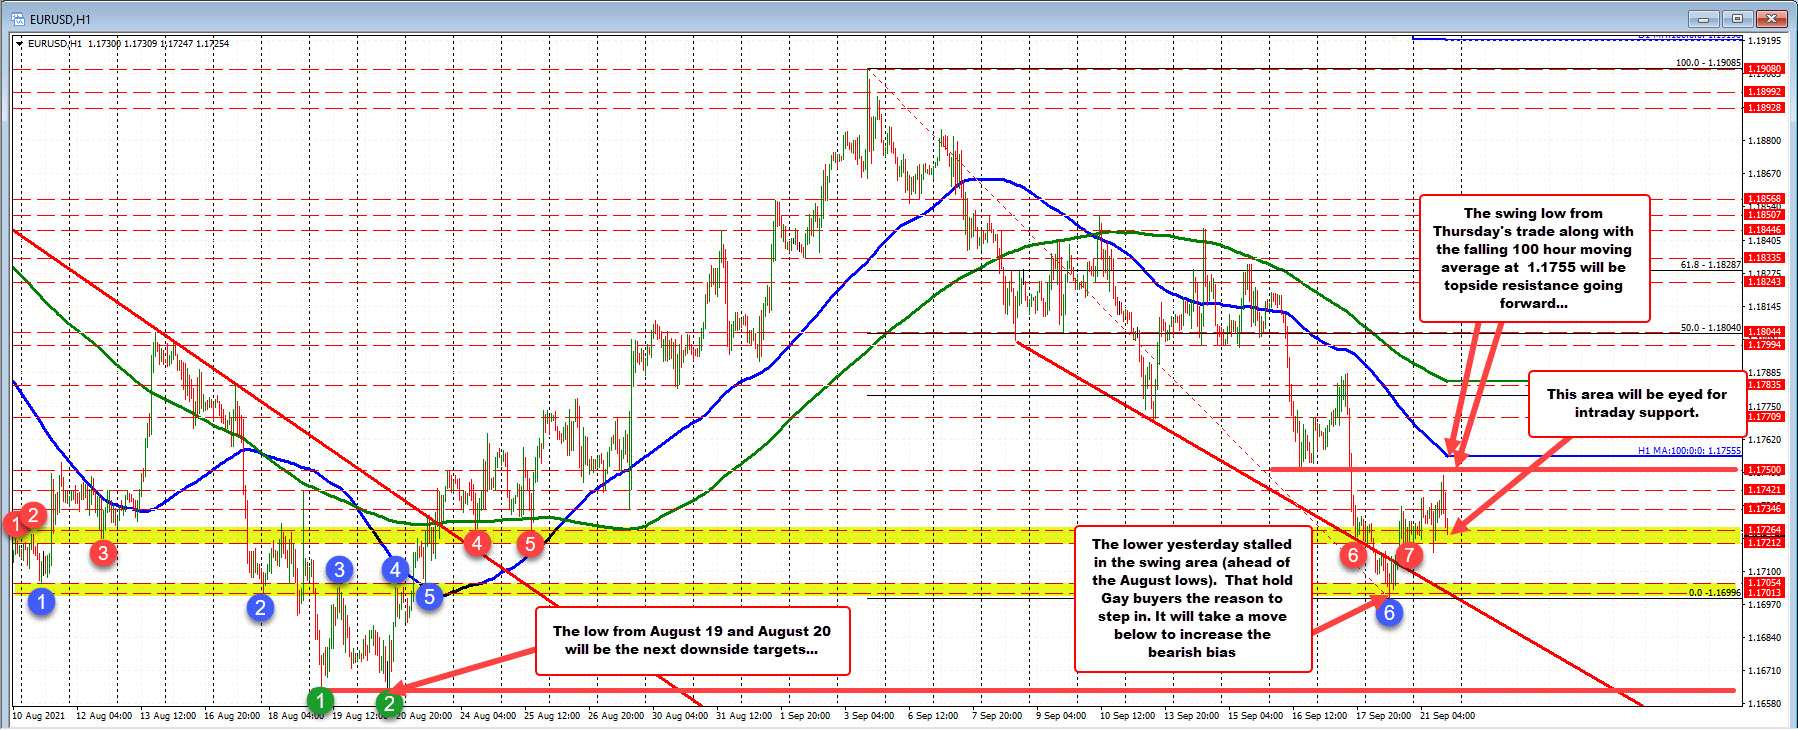 EURUSD tests a lower swing level, retracing the earlier gains